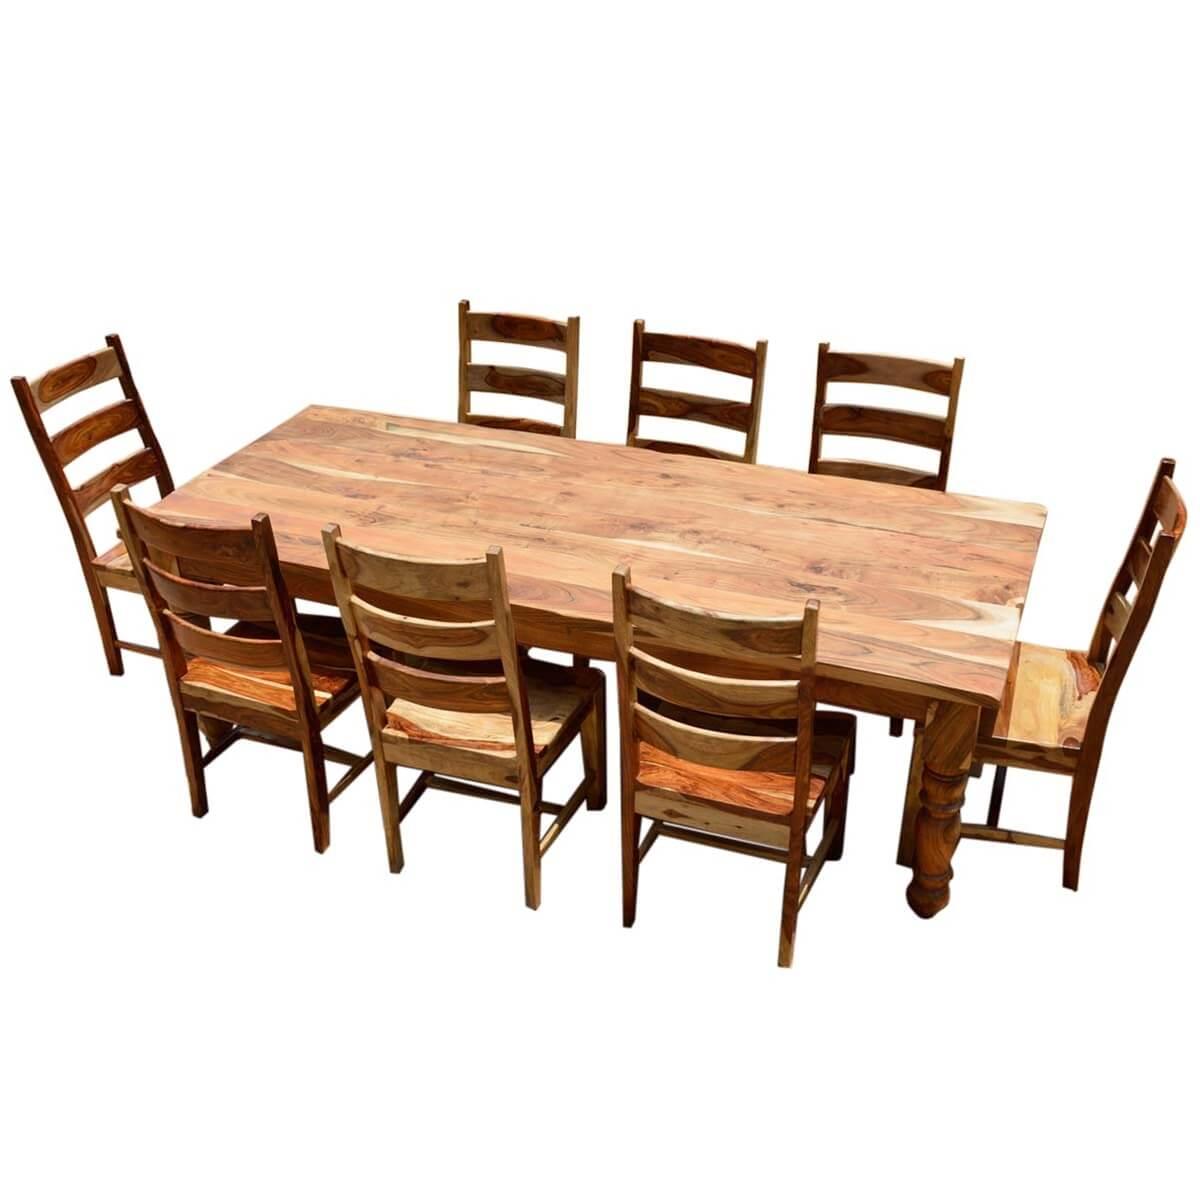 Rustic solid wood farmhouse dining room table chair set for Wood dining room furniture